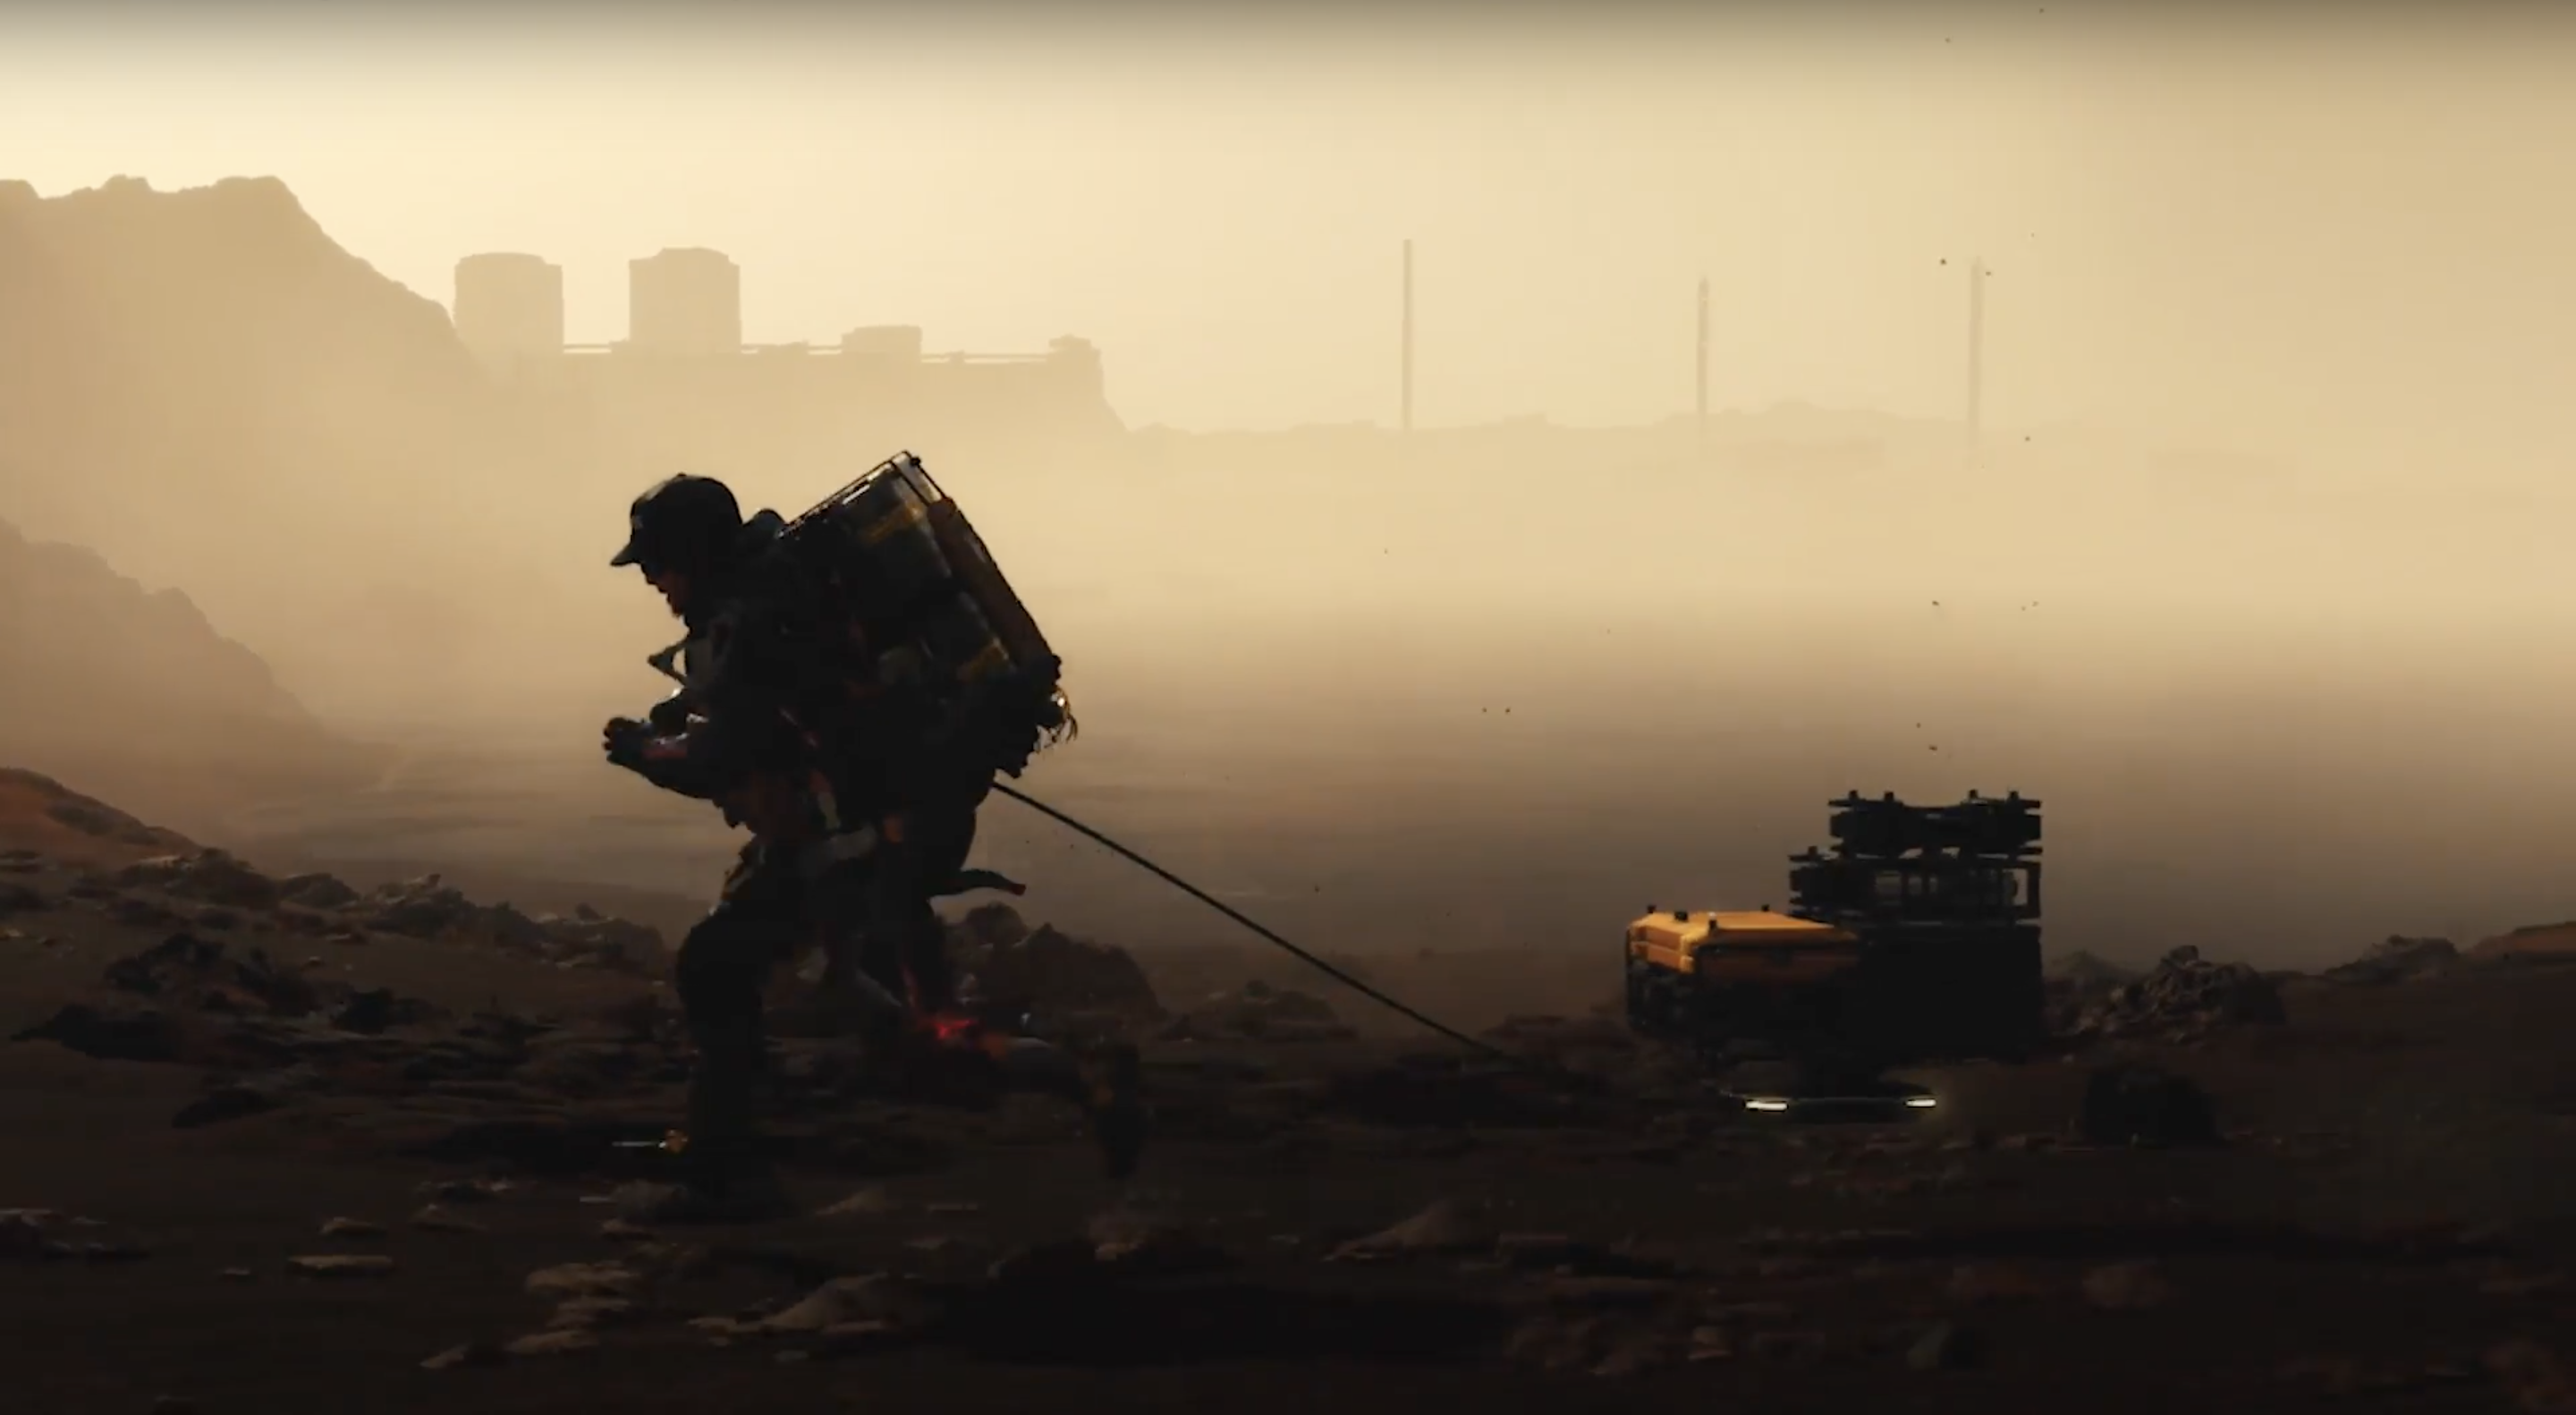 Death Stranding breaks up its slow pace with some great action sequences